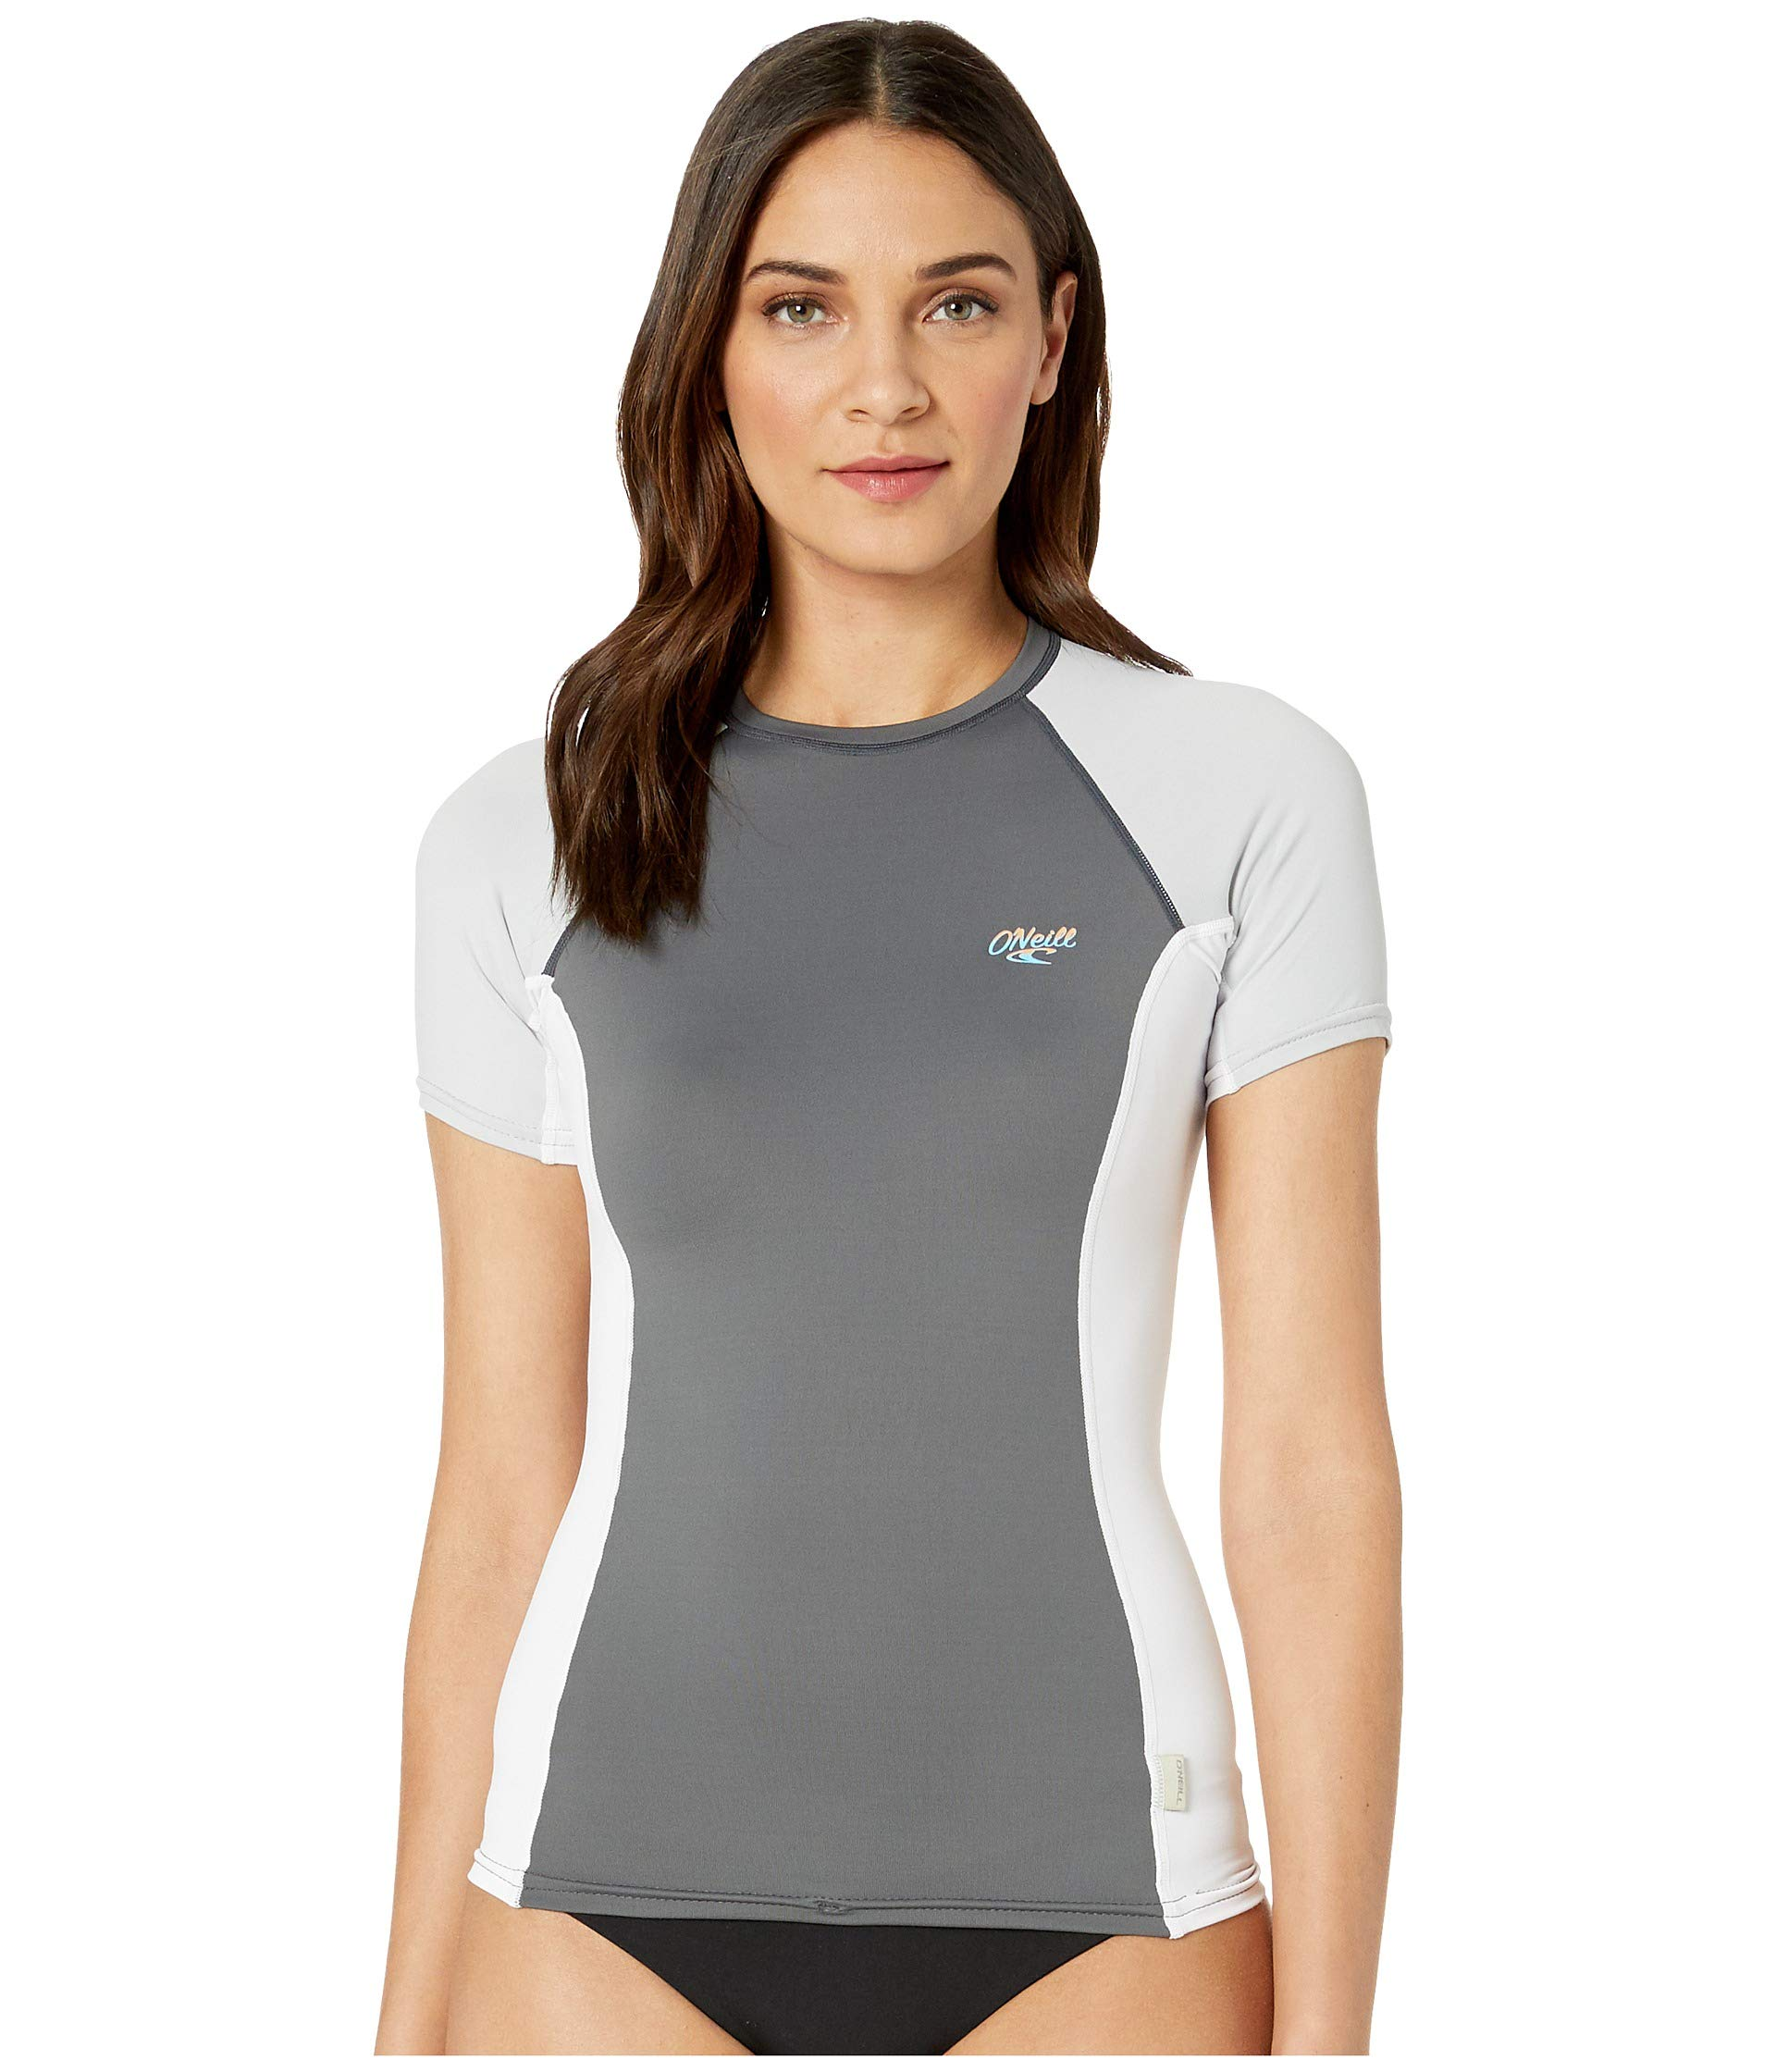 O'Neill Wetsuits Women's Premium Skins UPF 50+ Short Sleeve Rash Guard, Graphic/White/Cool Grey, X-Large by O'Neill Wetsuits